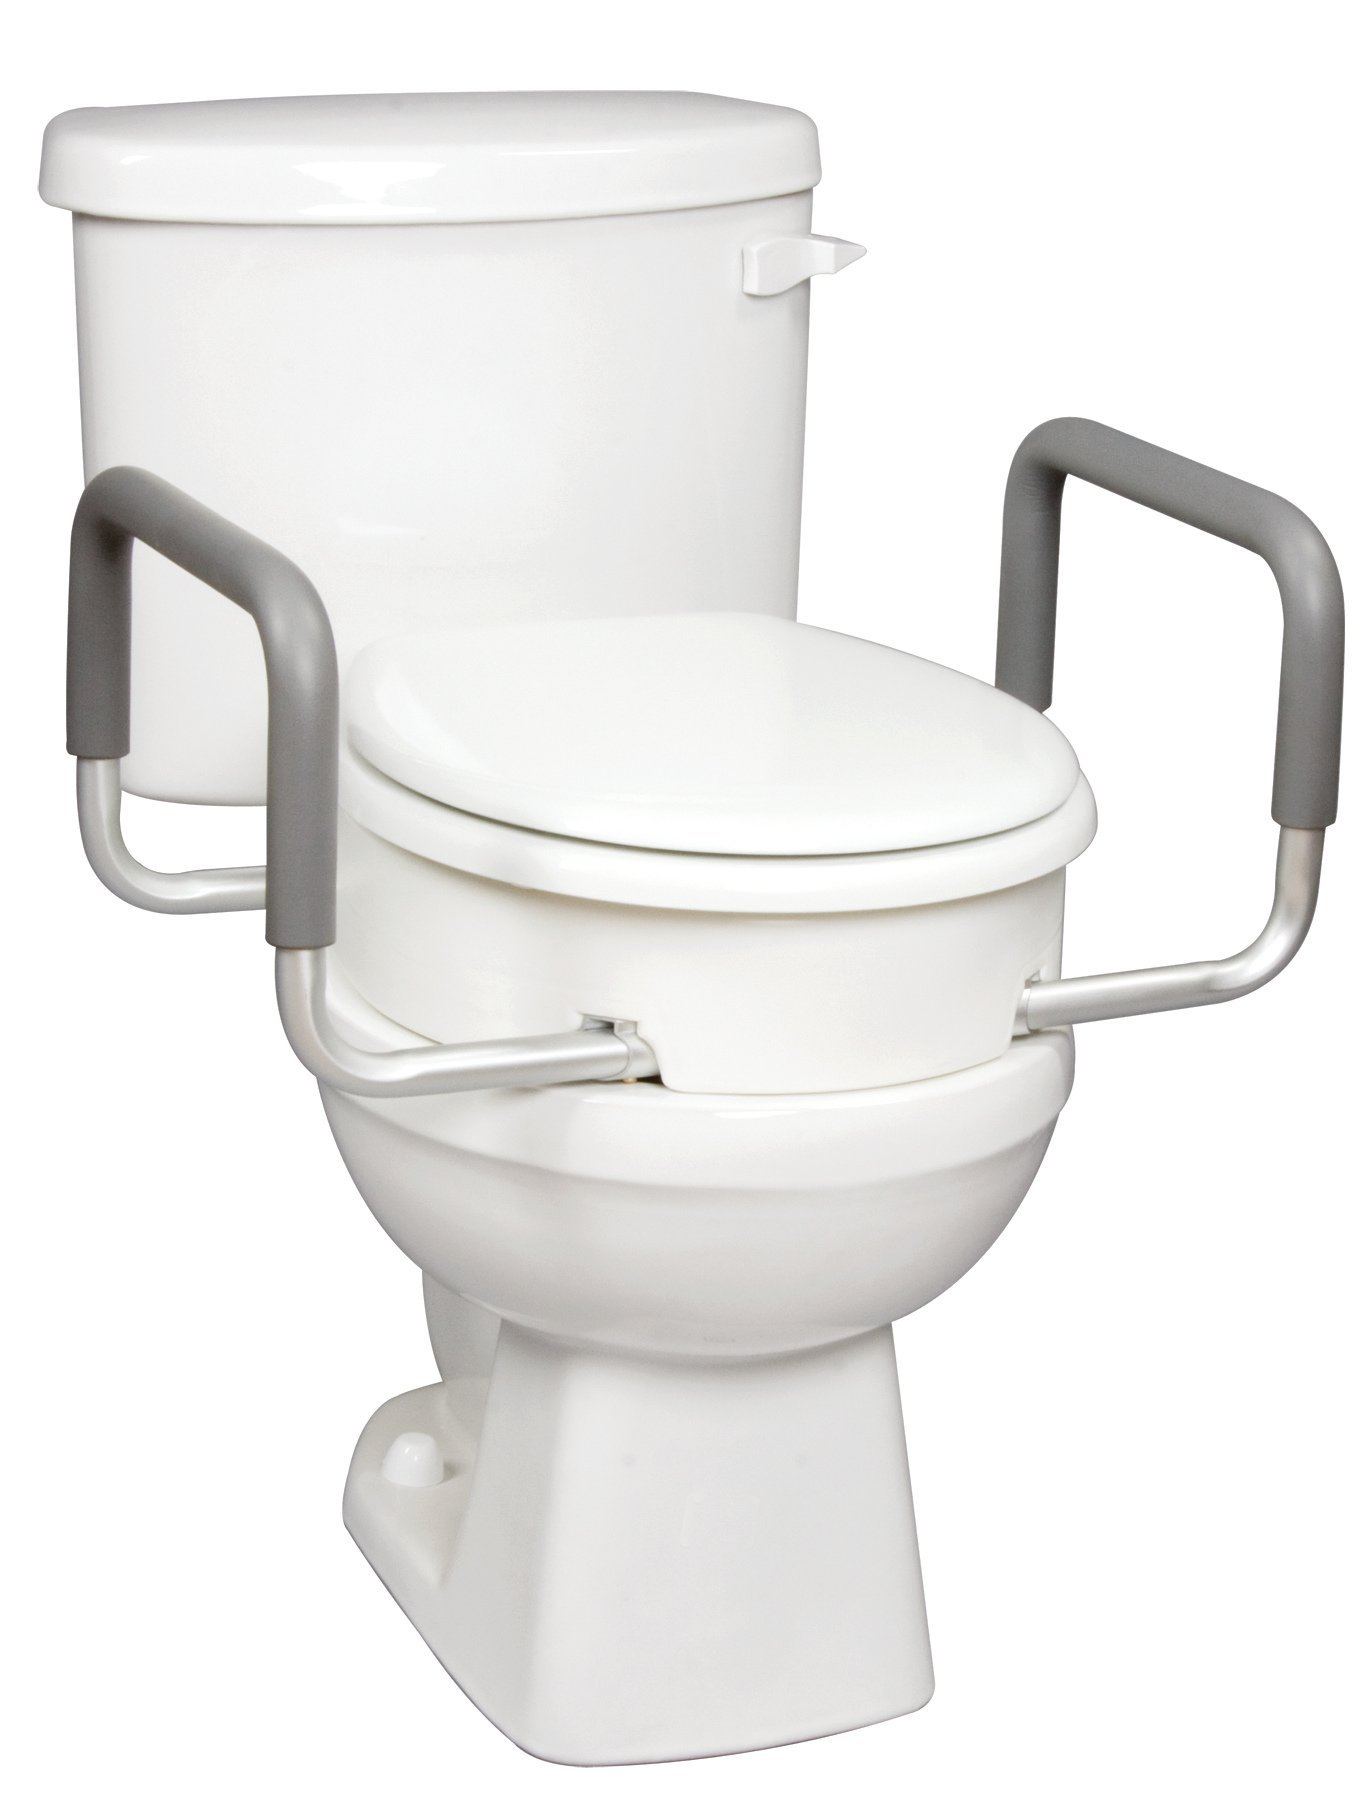 Carex 3.5 Inch Raised Toilet Seat with Arms - For Round Toilets - Elevated Toilet Riser with Removable Padded Handles, Easy On and Off, Support 250 lbs